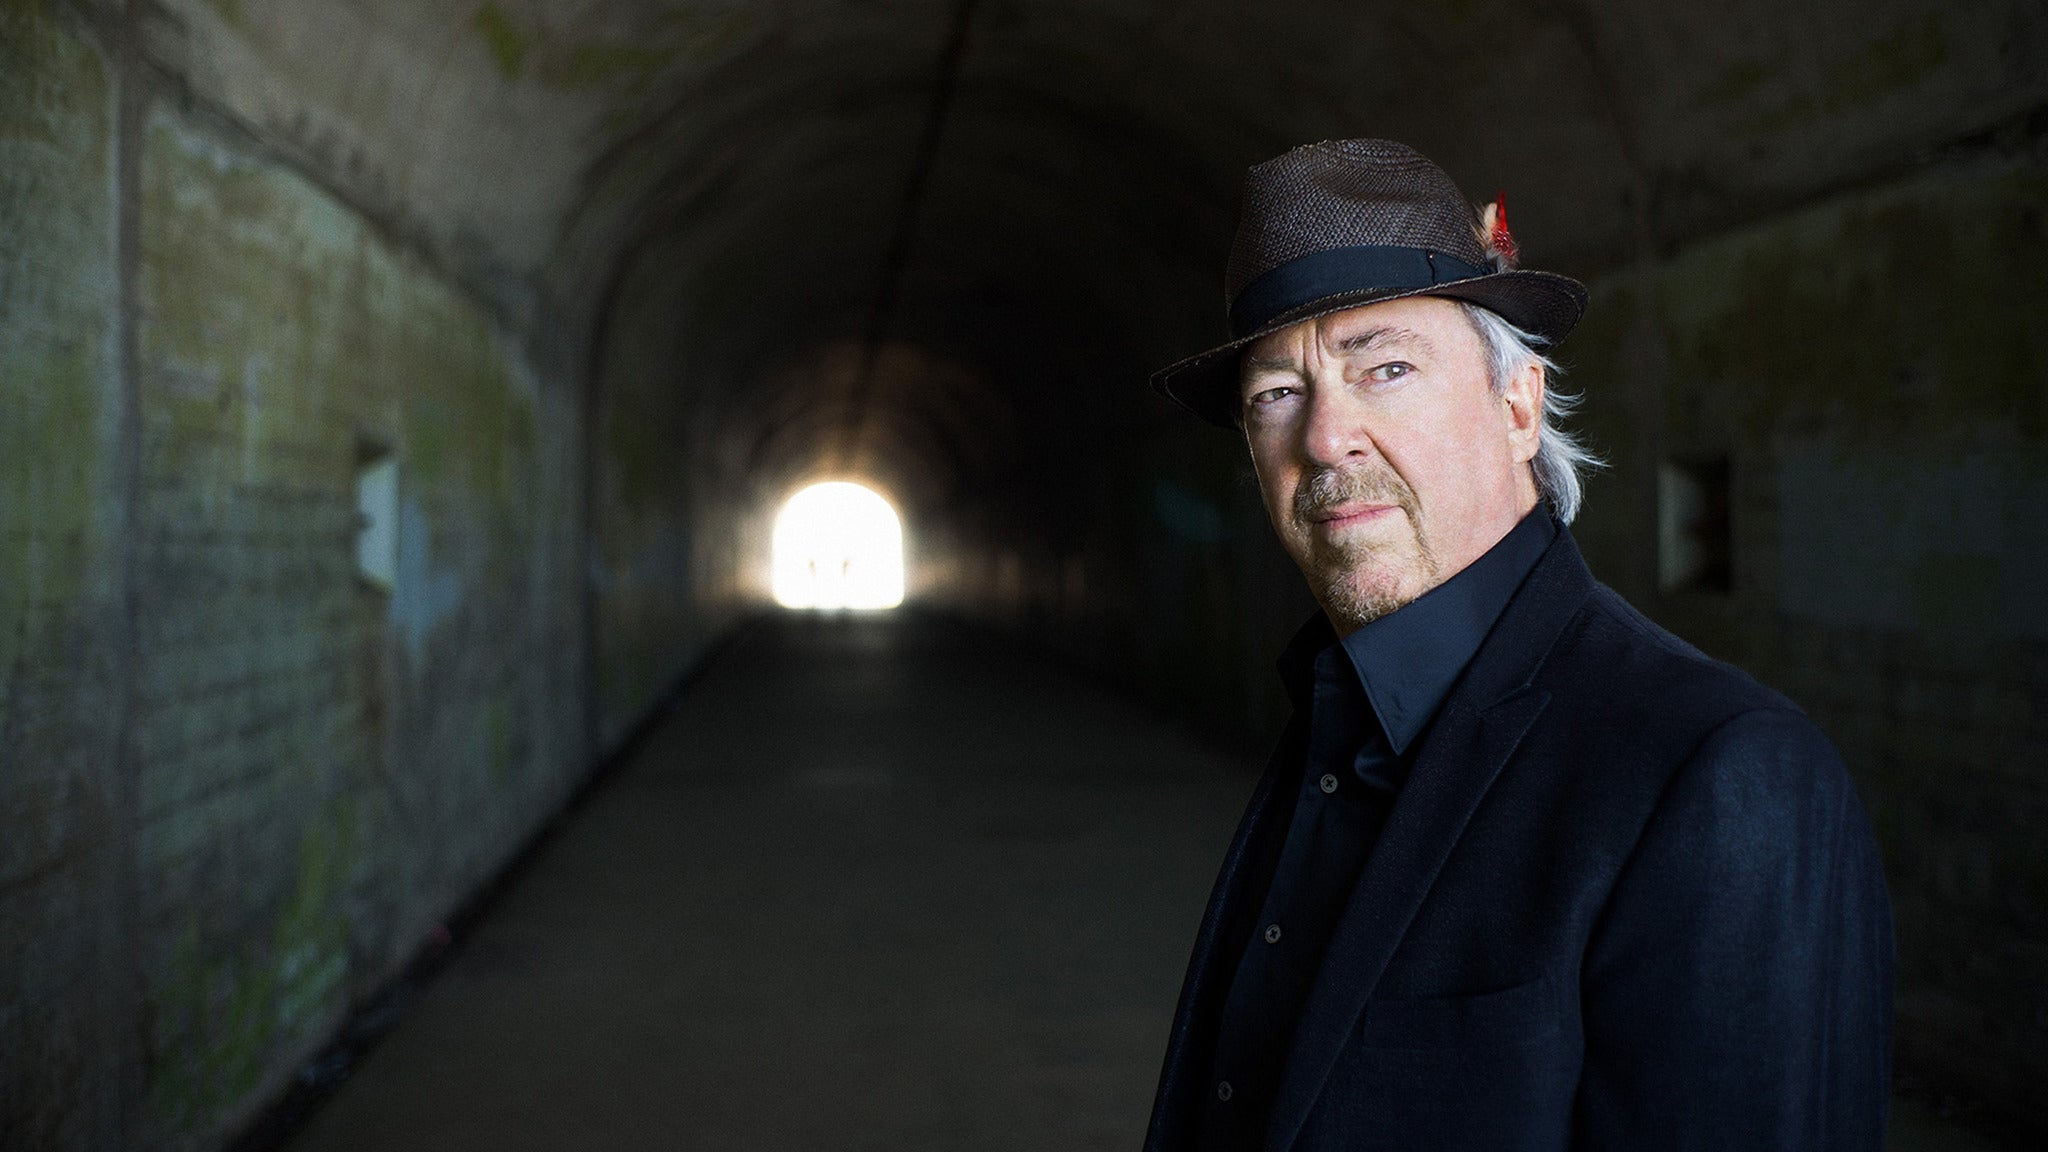 Boz Scaggs at Van Wezel Performing Arts Center